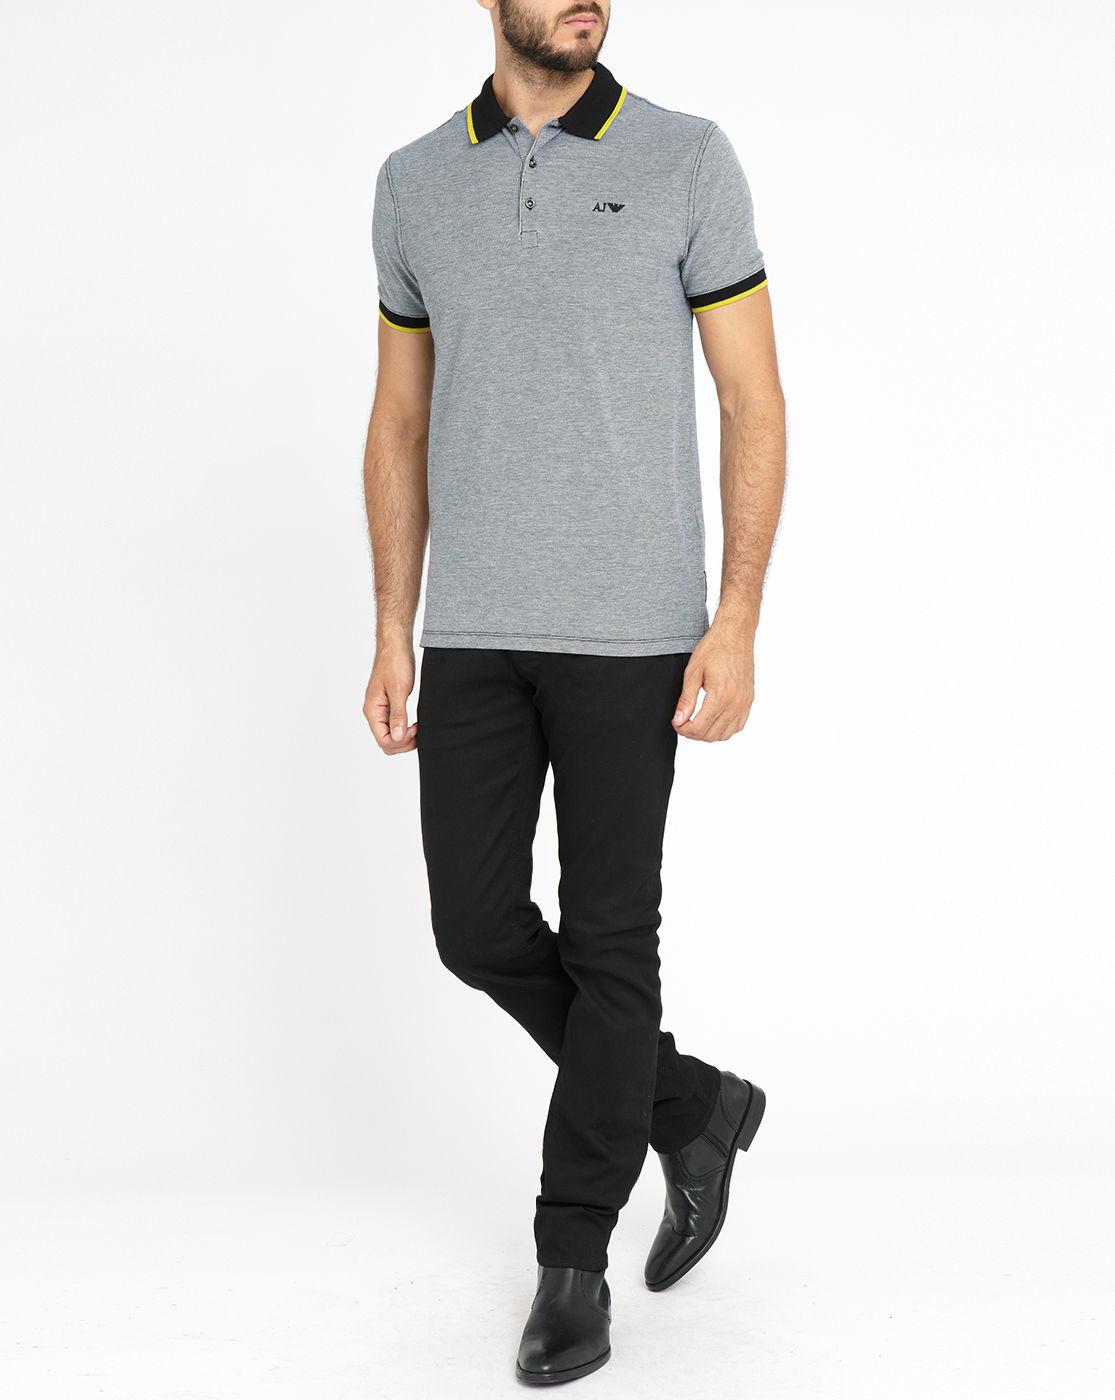 Armani jeans marled grey contrasting black yellow collar for Polo shirt and jeans